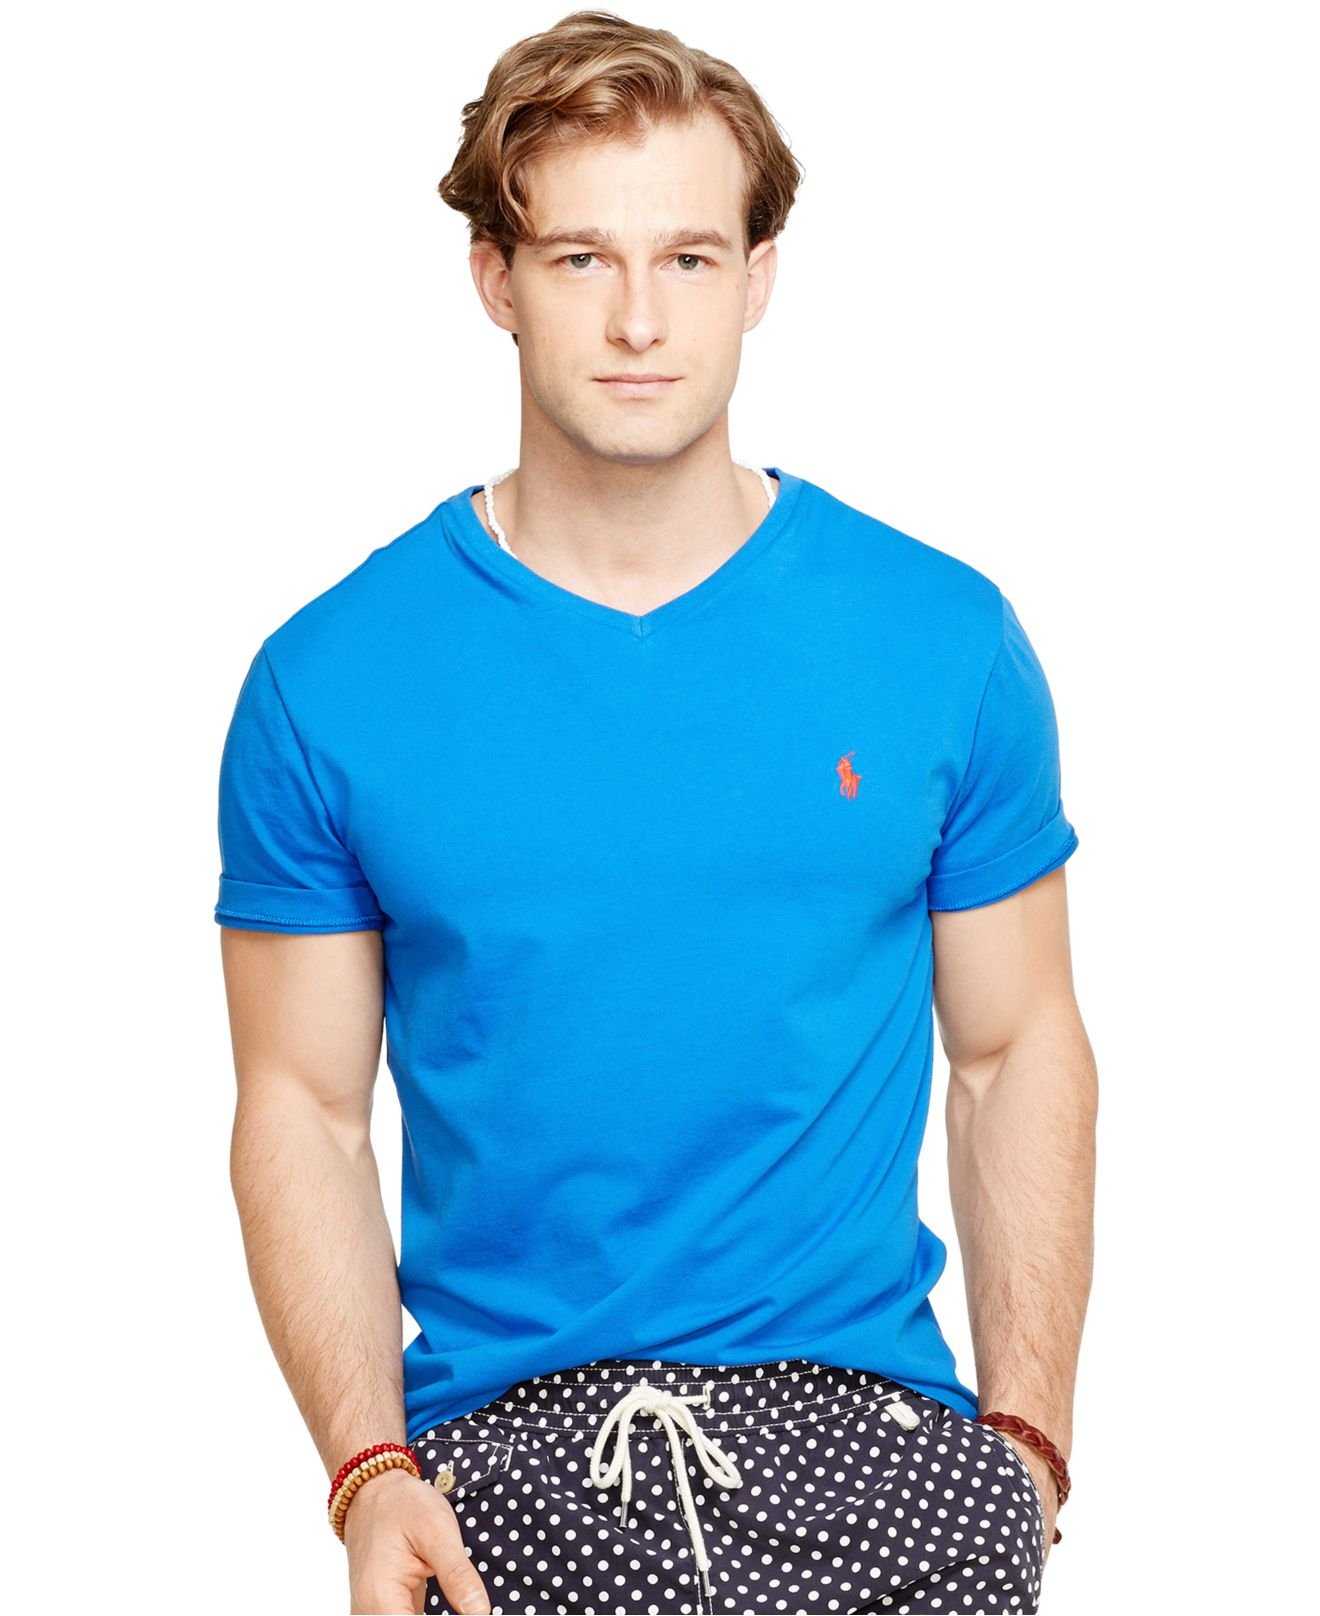 Polo Ralph Lauren V Neck T Shirt In Blue For Men Spa